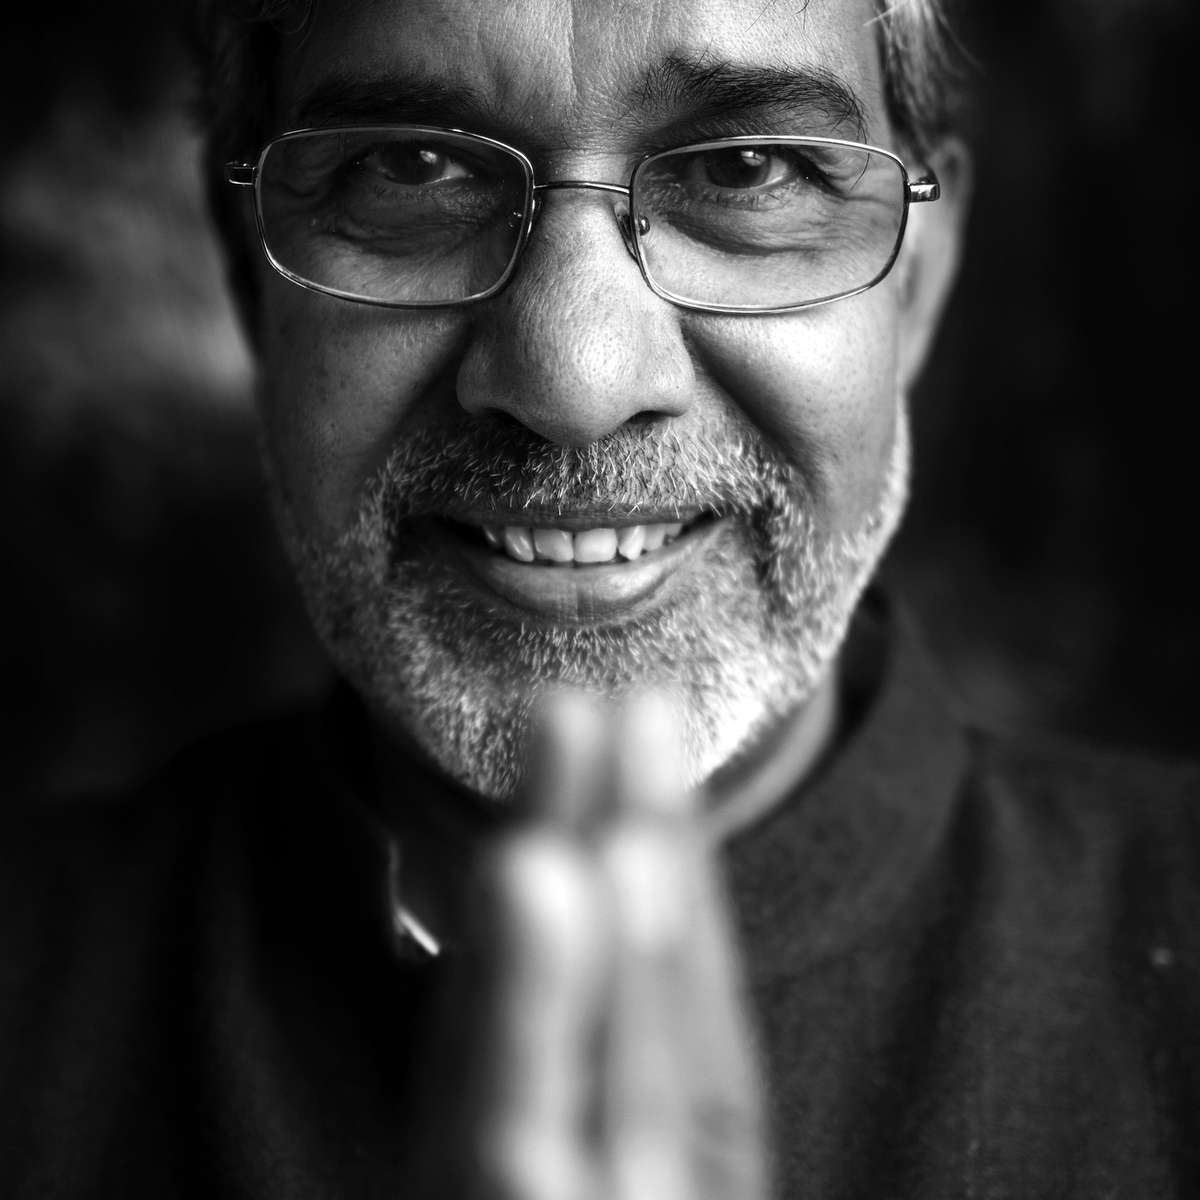 Kailash Satyarthi, Co-Nobel Peace Prize Laureate 2014